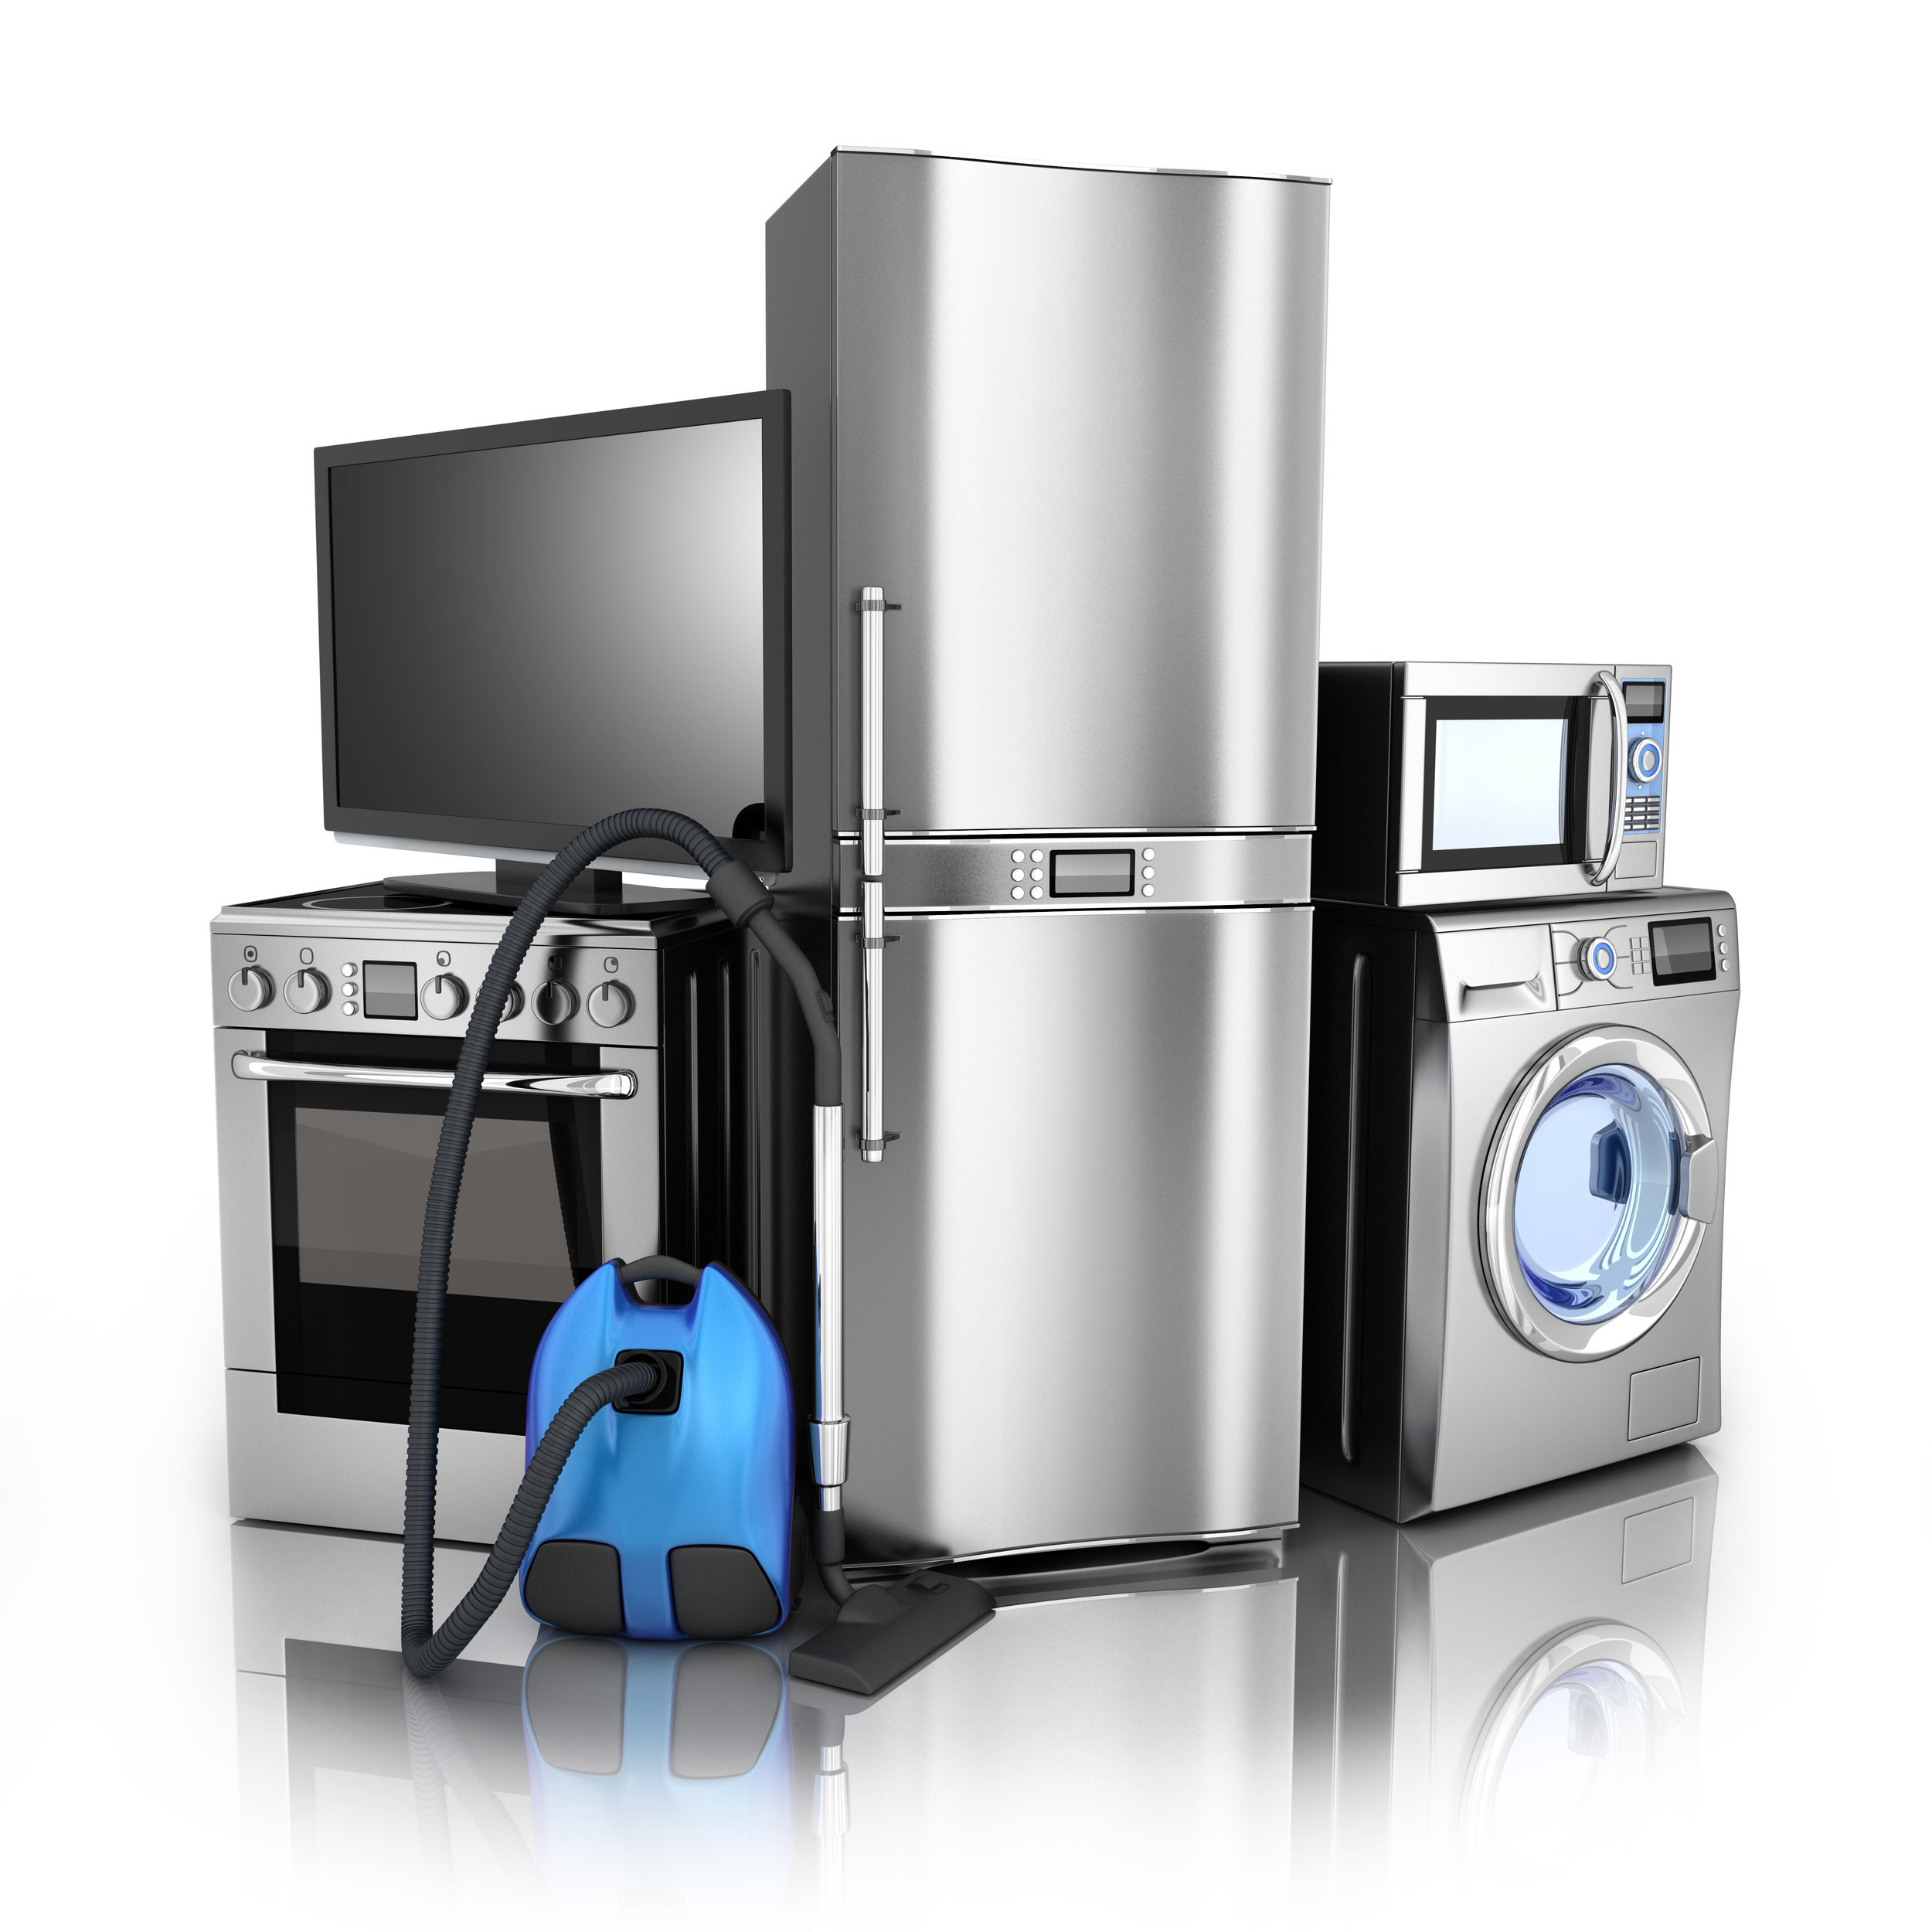 Home Electronics Fulfillment: Overcoming Logistic Challenges